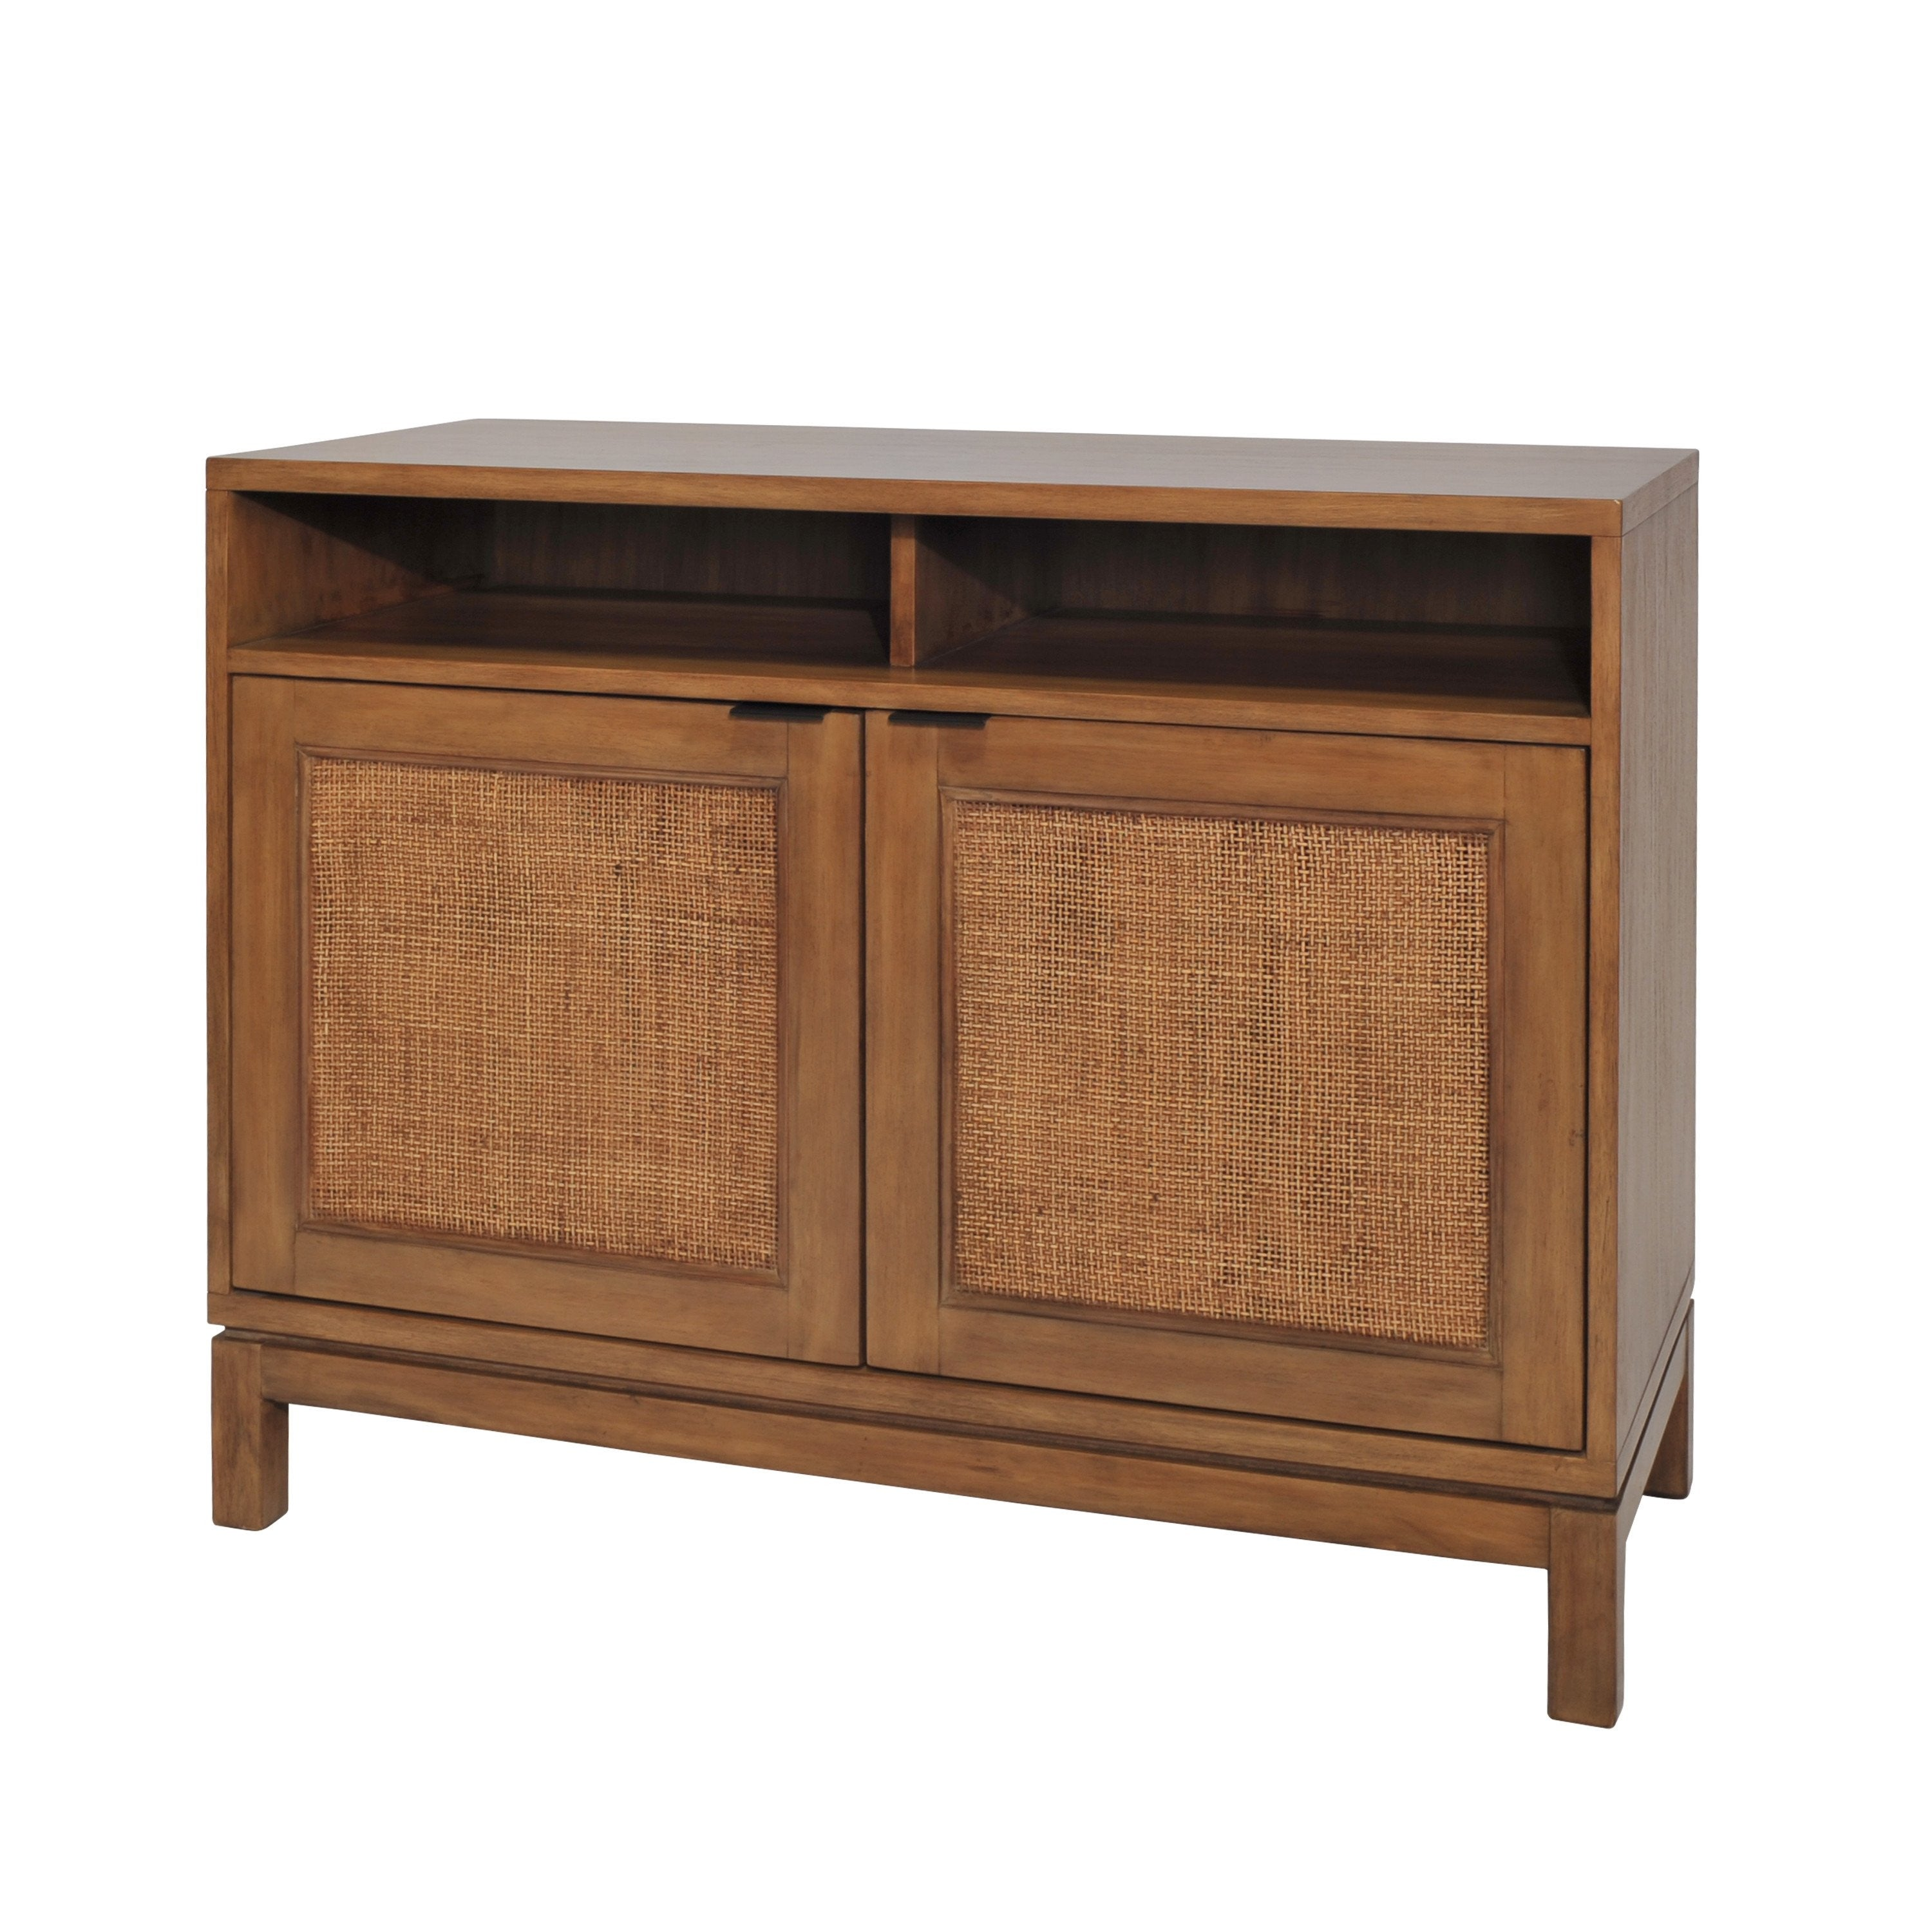 Francisco rattan panel sideboard natural apt2b for Sideboard rattan